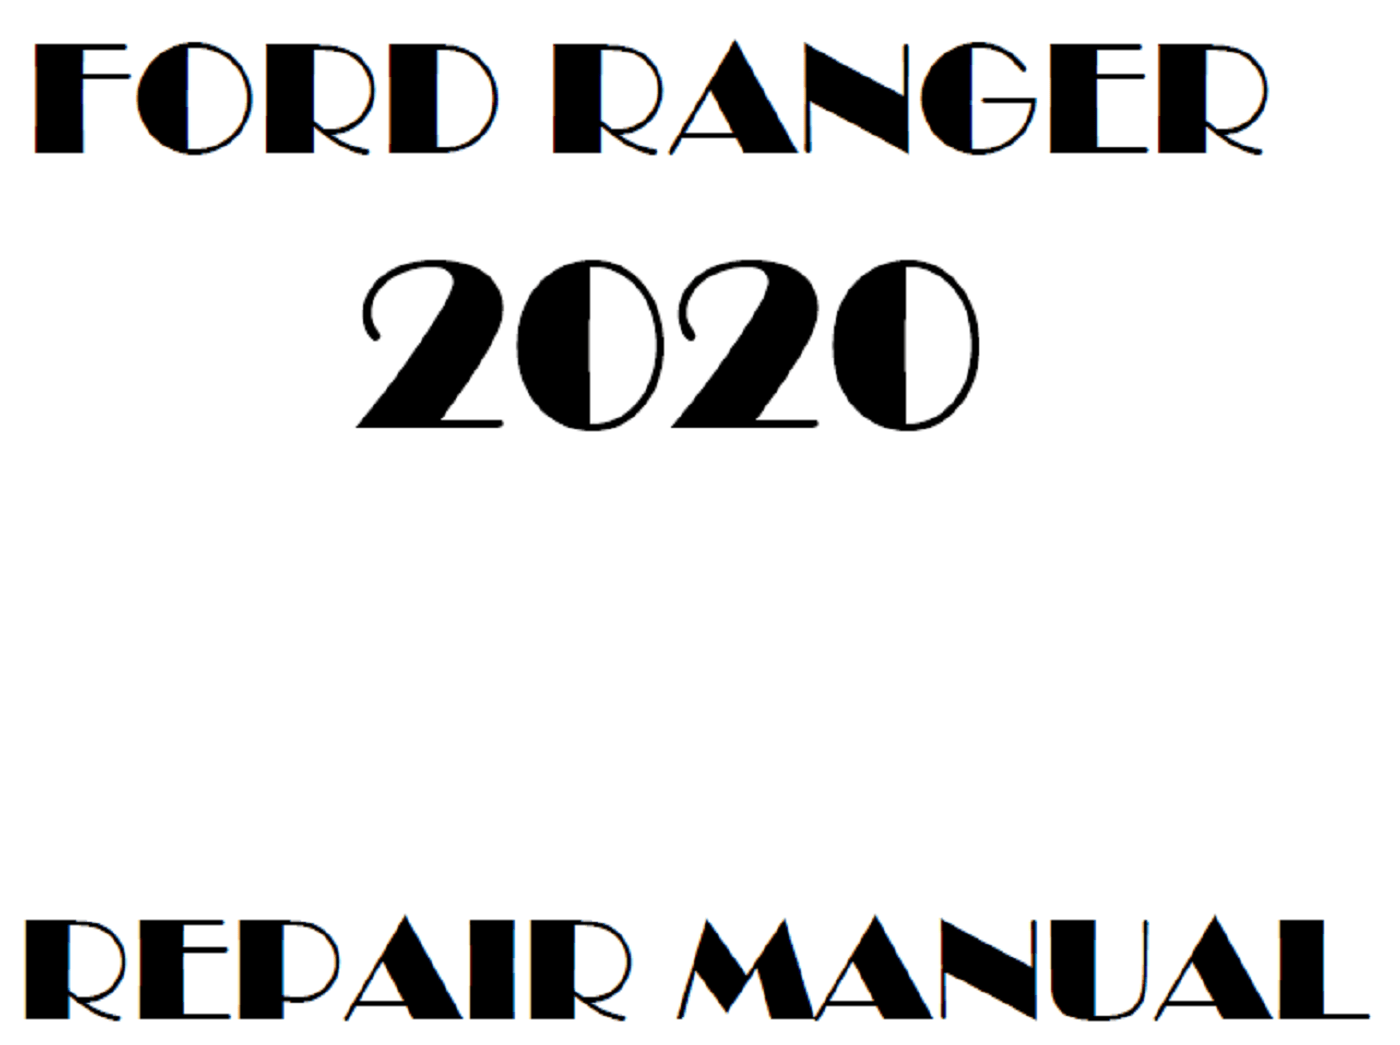 2020 Ford Ranger repair manual